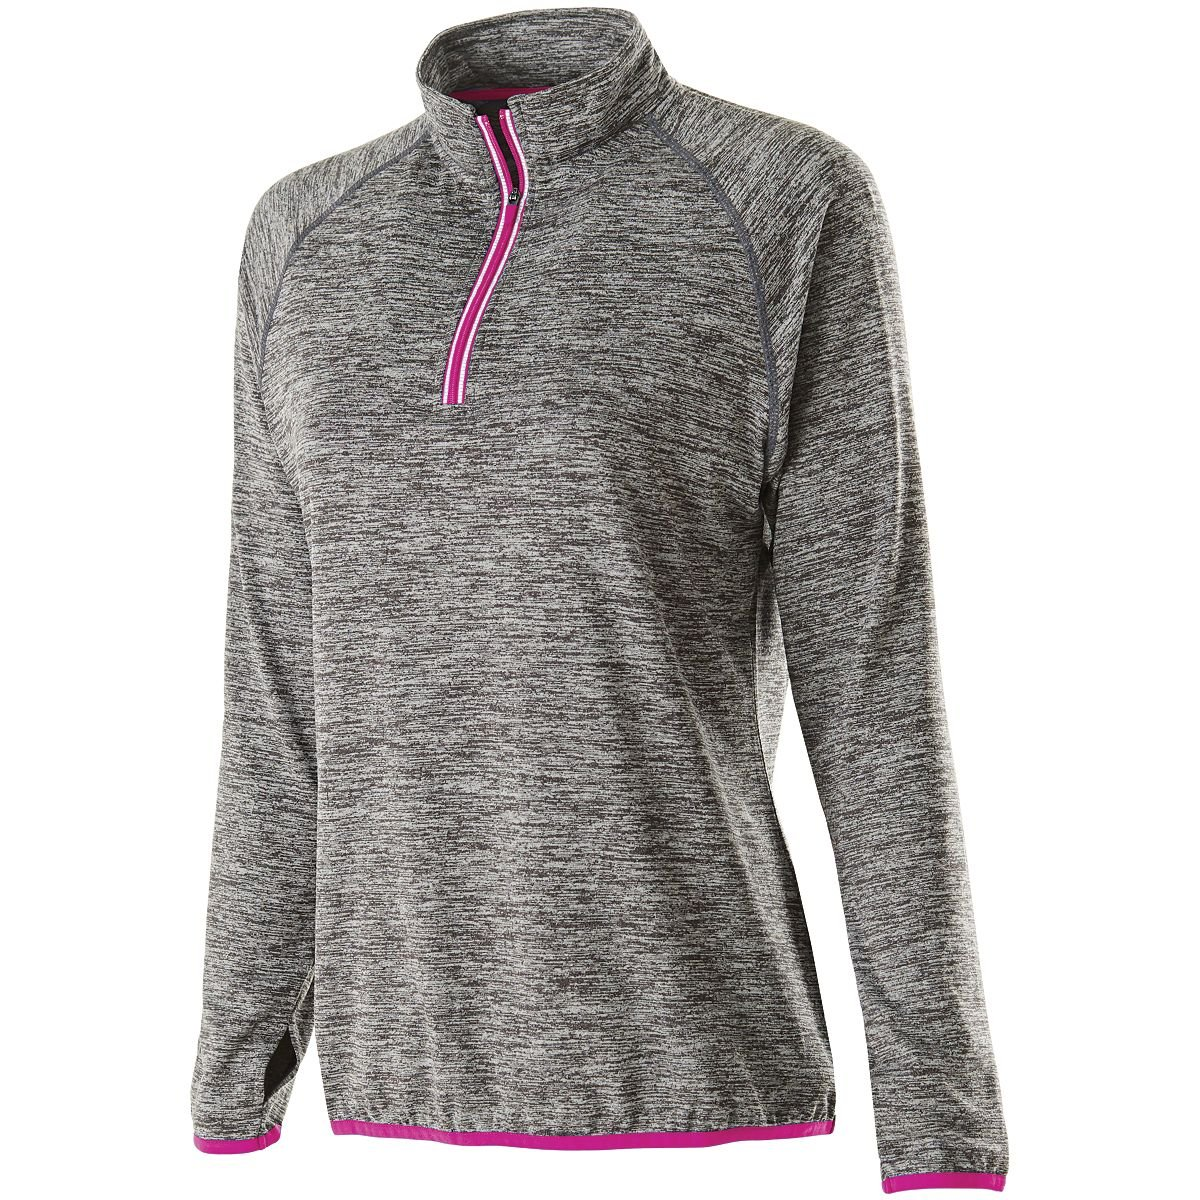 Holloway Women's Force Training Top Pullover, Carbon Heather/Power Pink, Small by Holloway